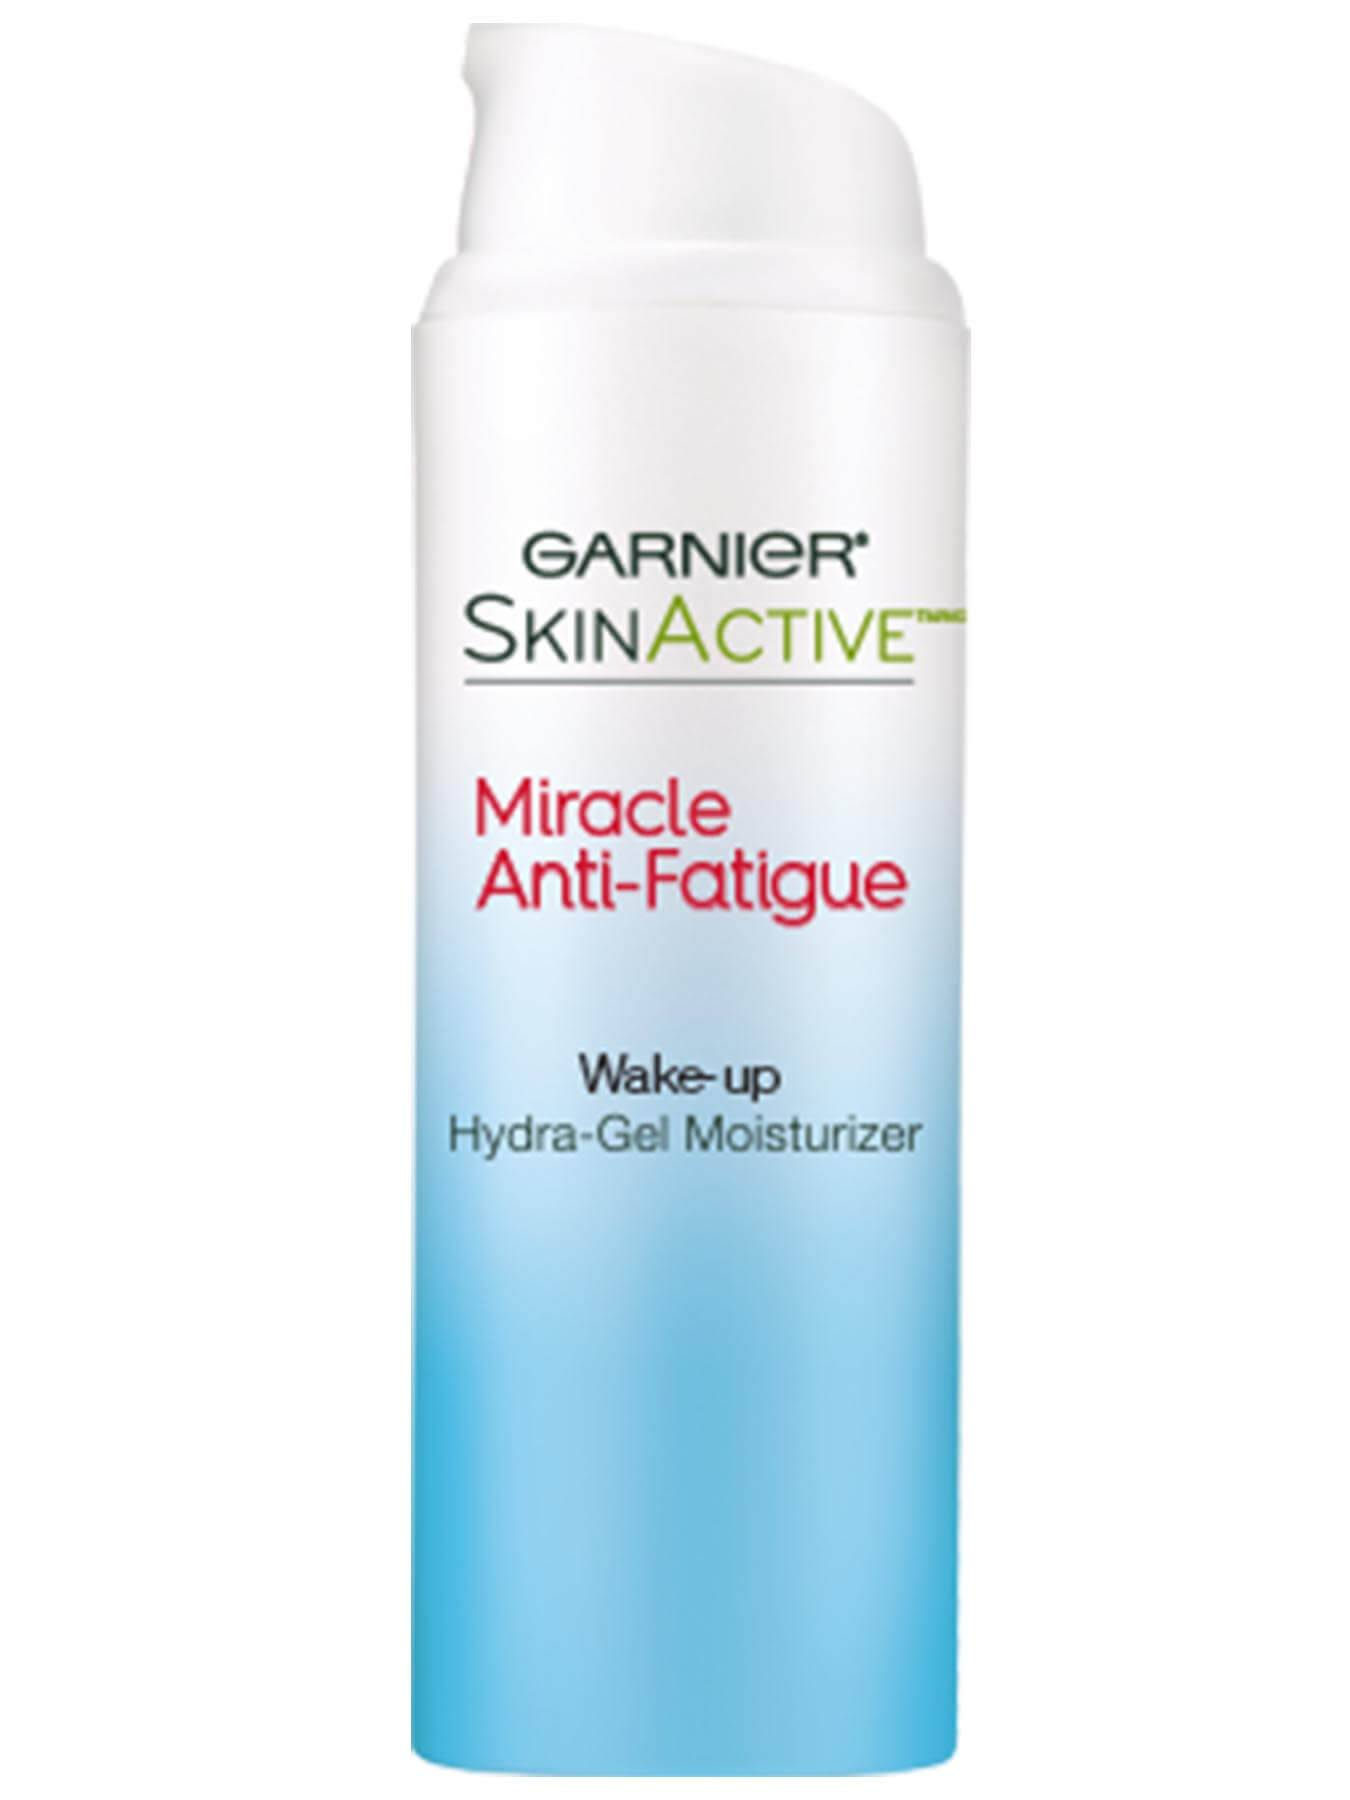 Garnier SkinActive Miracle Day Wake-Up Hydra-Gel Moisturizer for Dull, Tired Skin